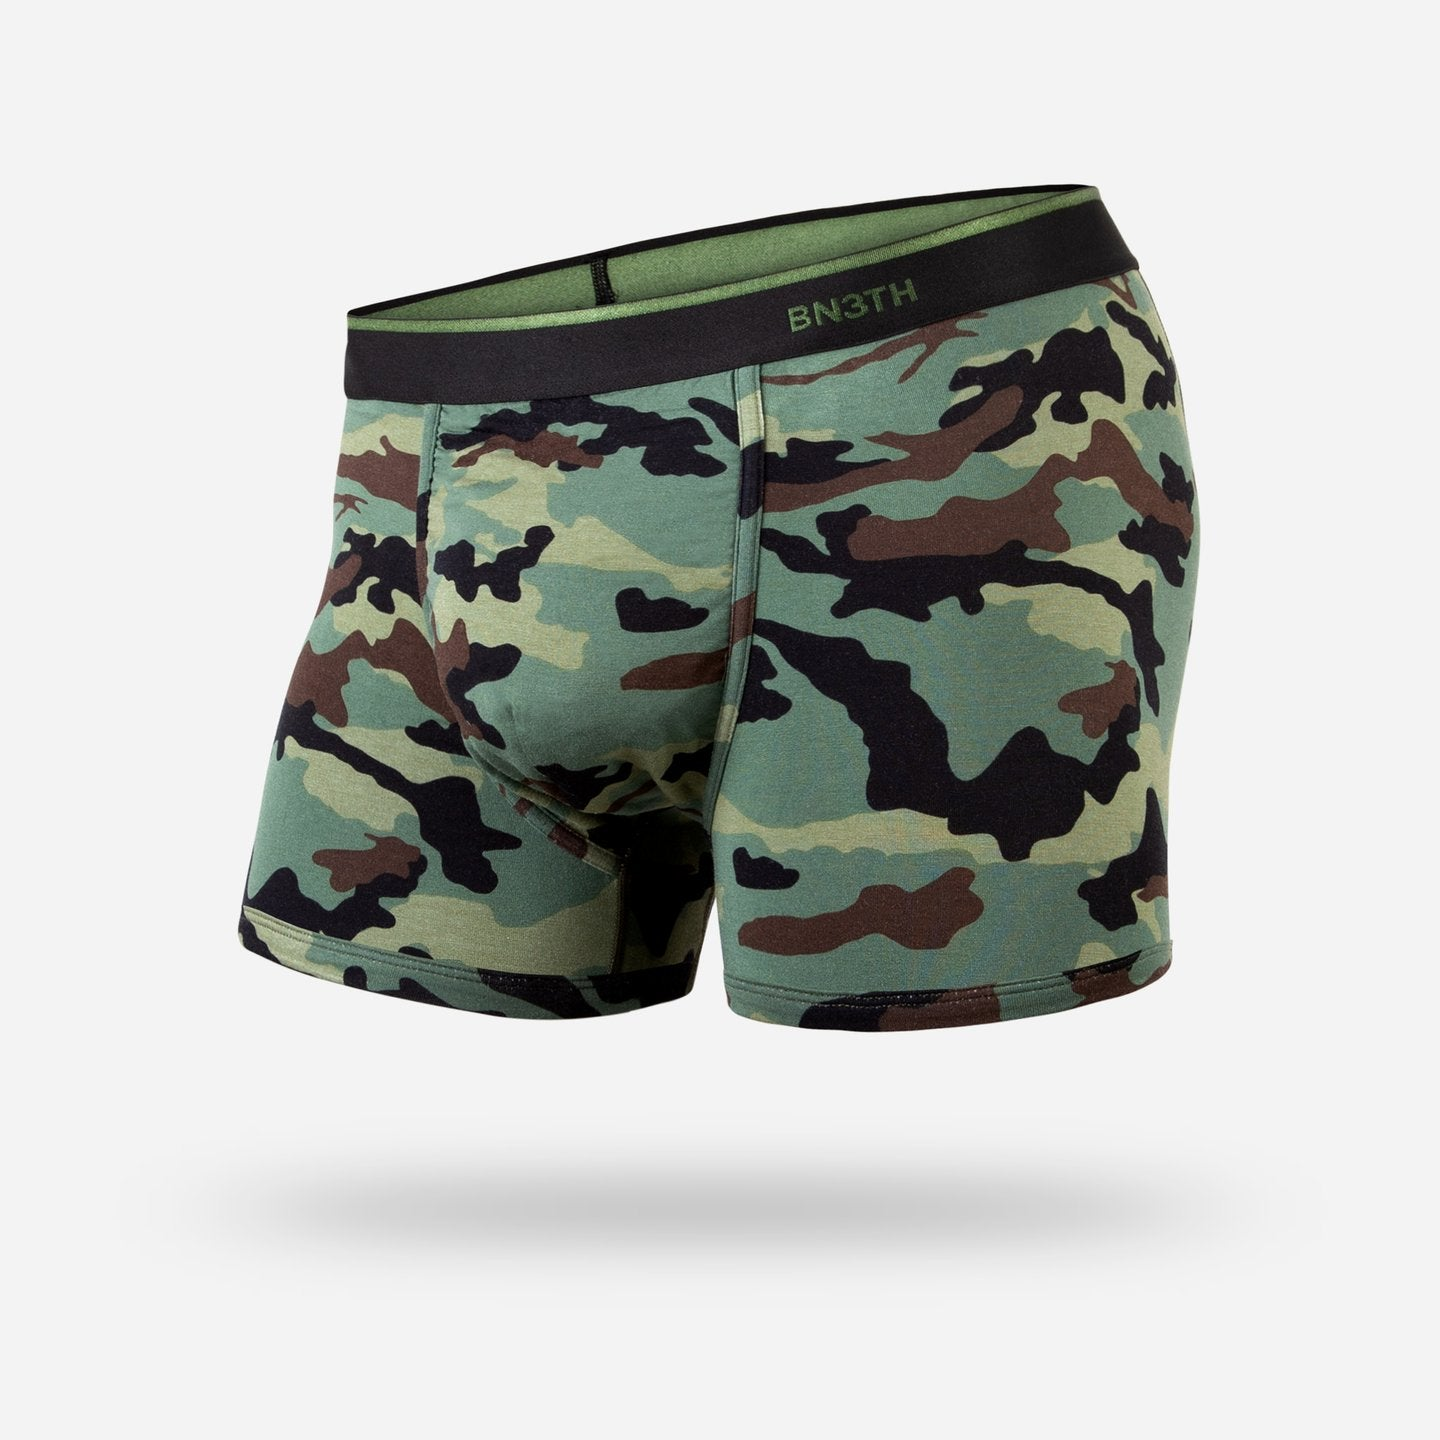 Boxer court Bn3th print camo